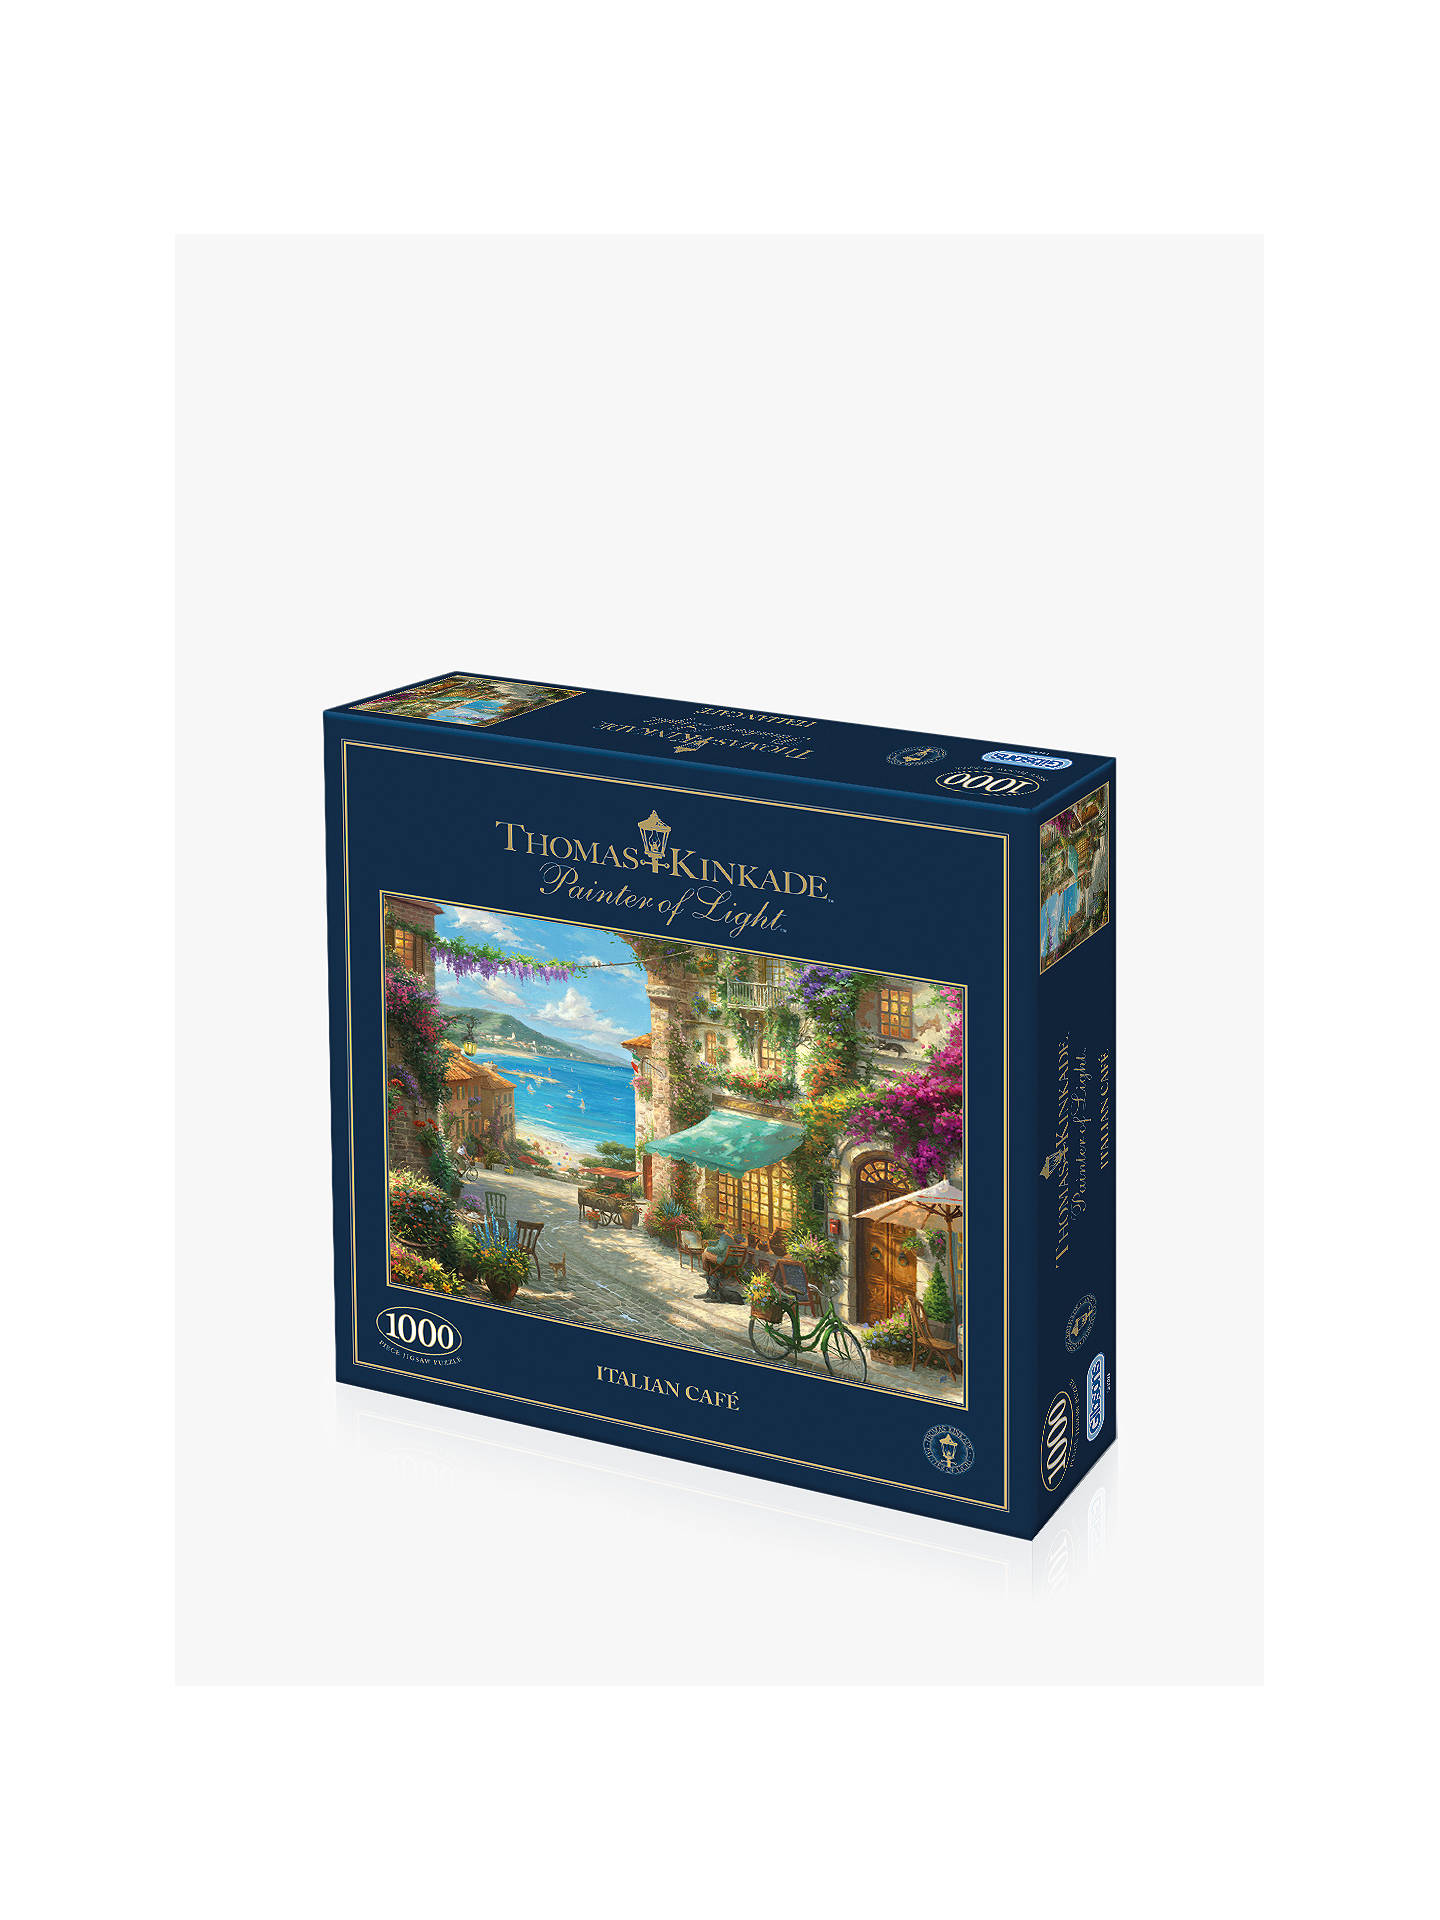 Buy Gibsons Italian Cafe Jigsaw Puzzle, 1000 pieces Online at johnlewis.com